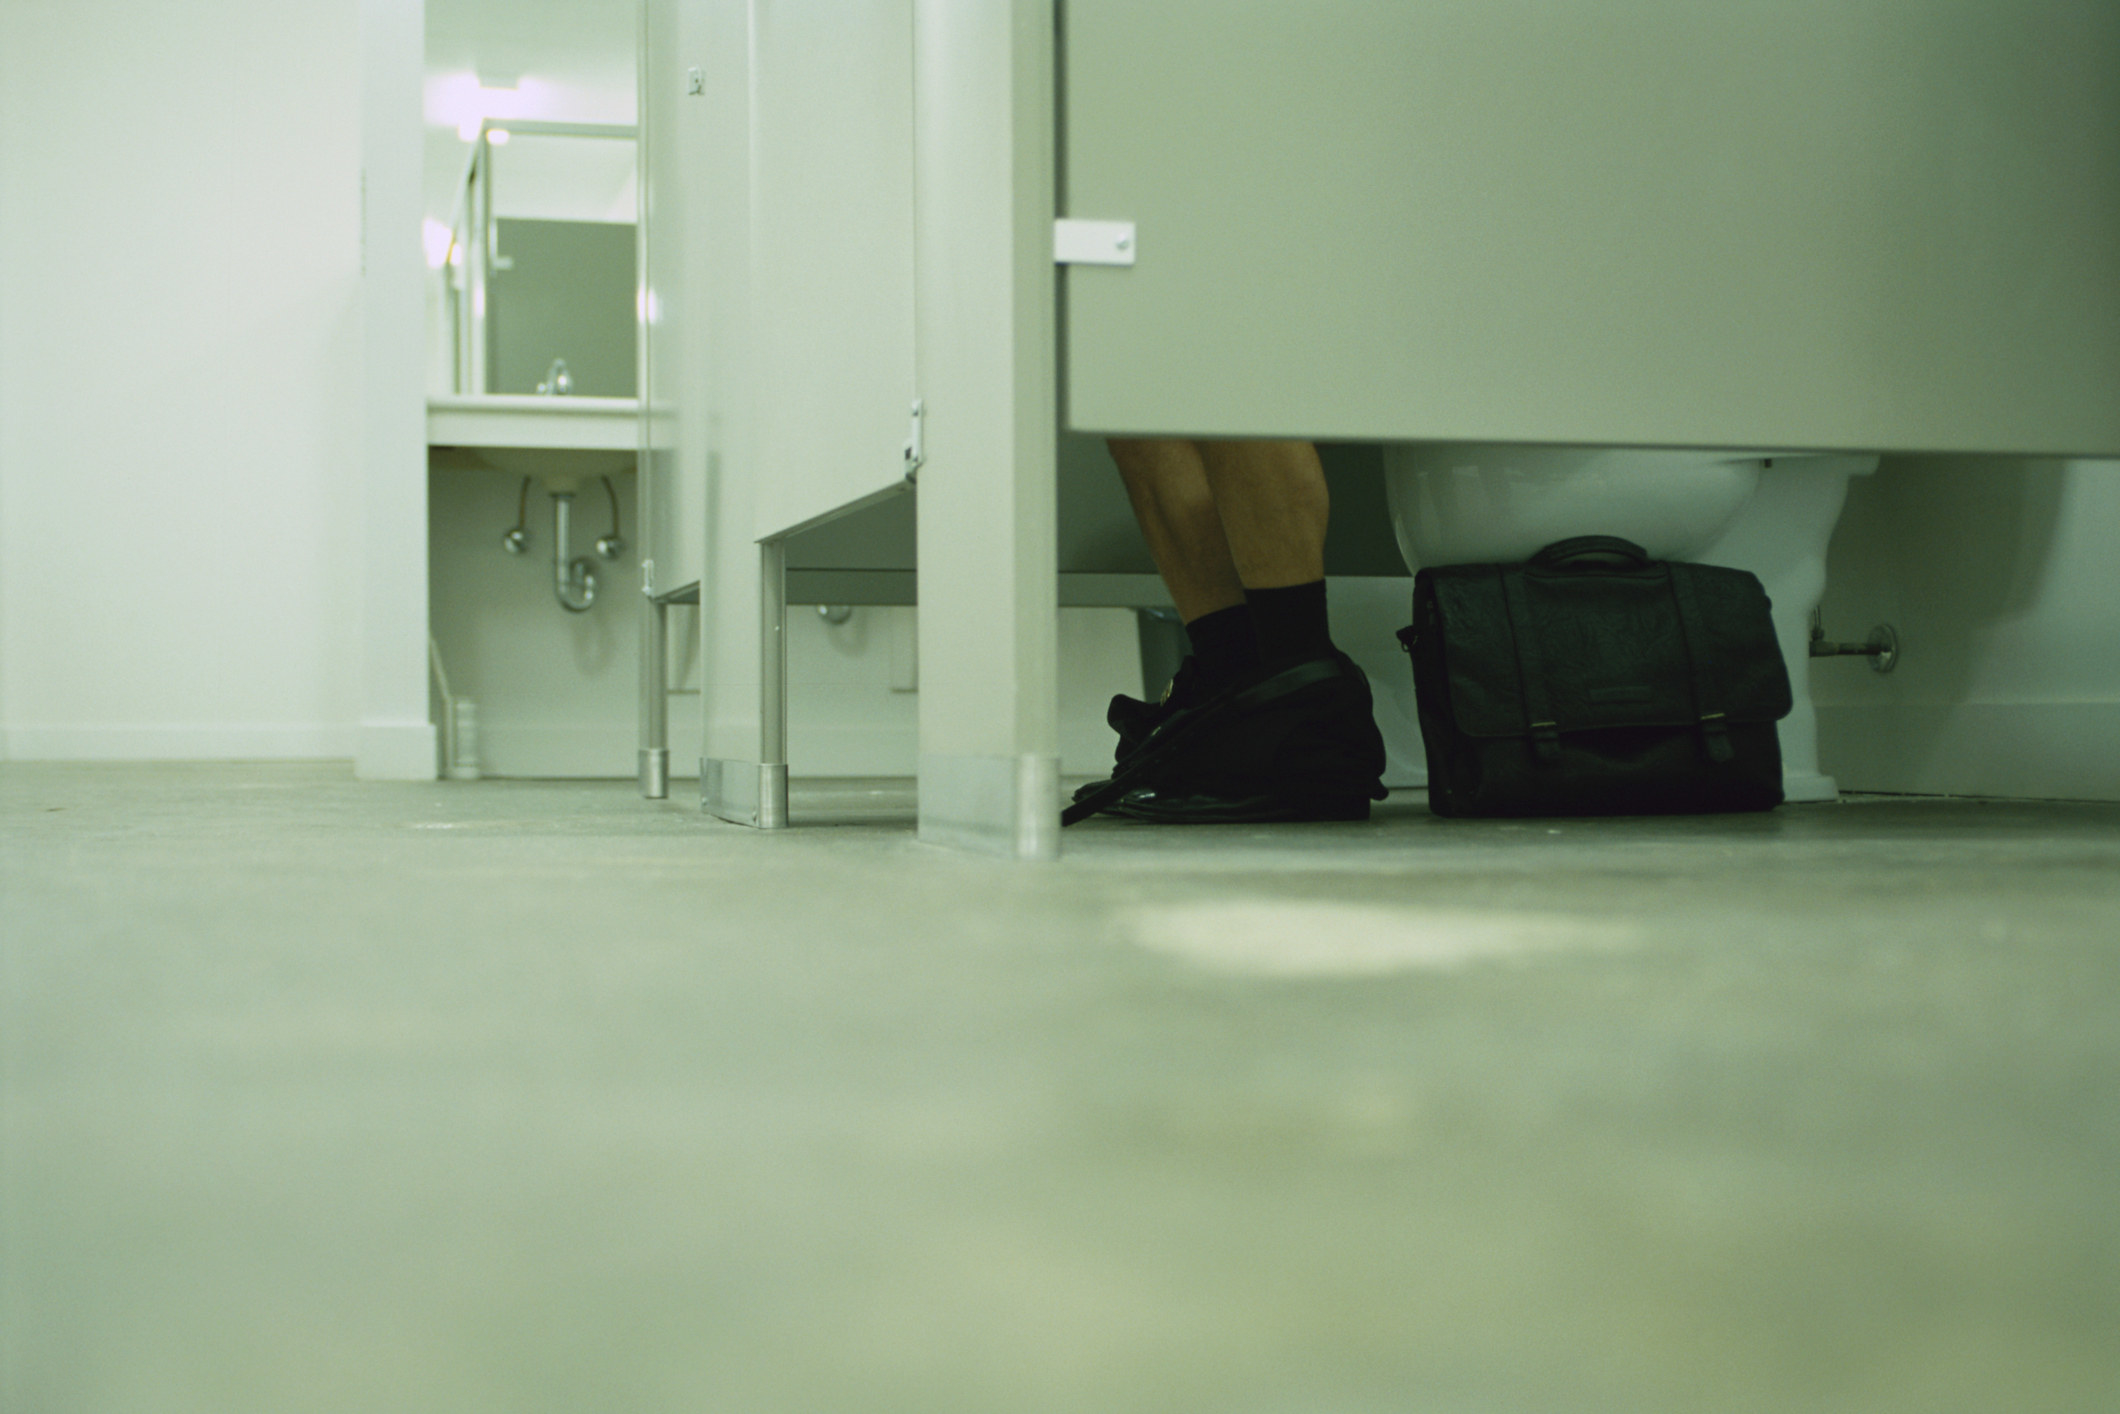 Floor level view of a public restroom, visible legs in the closest stall with pants around ankles